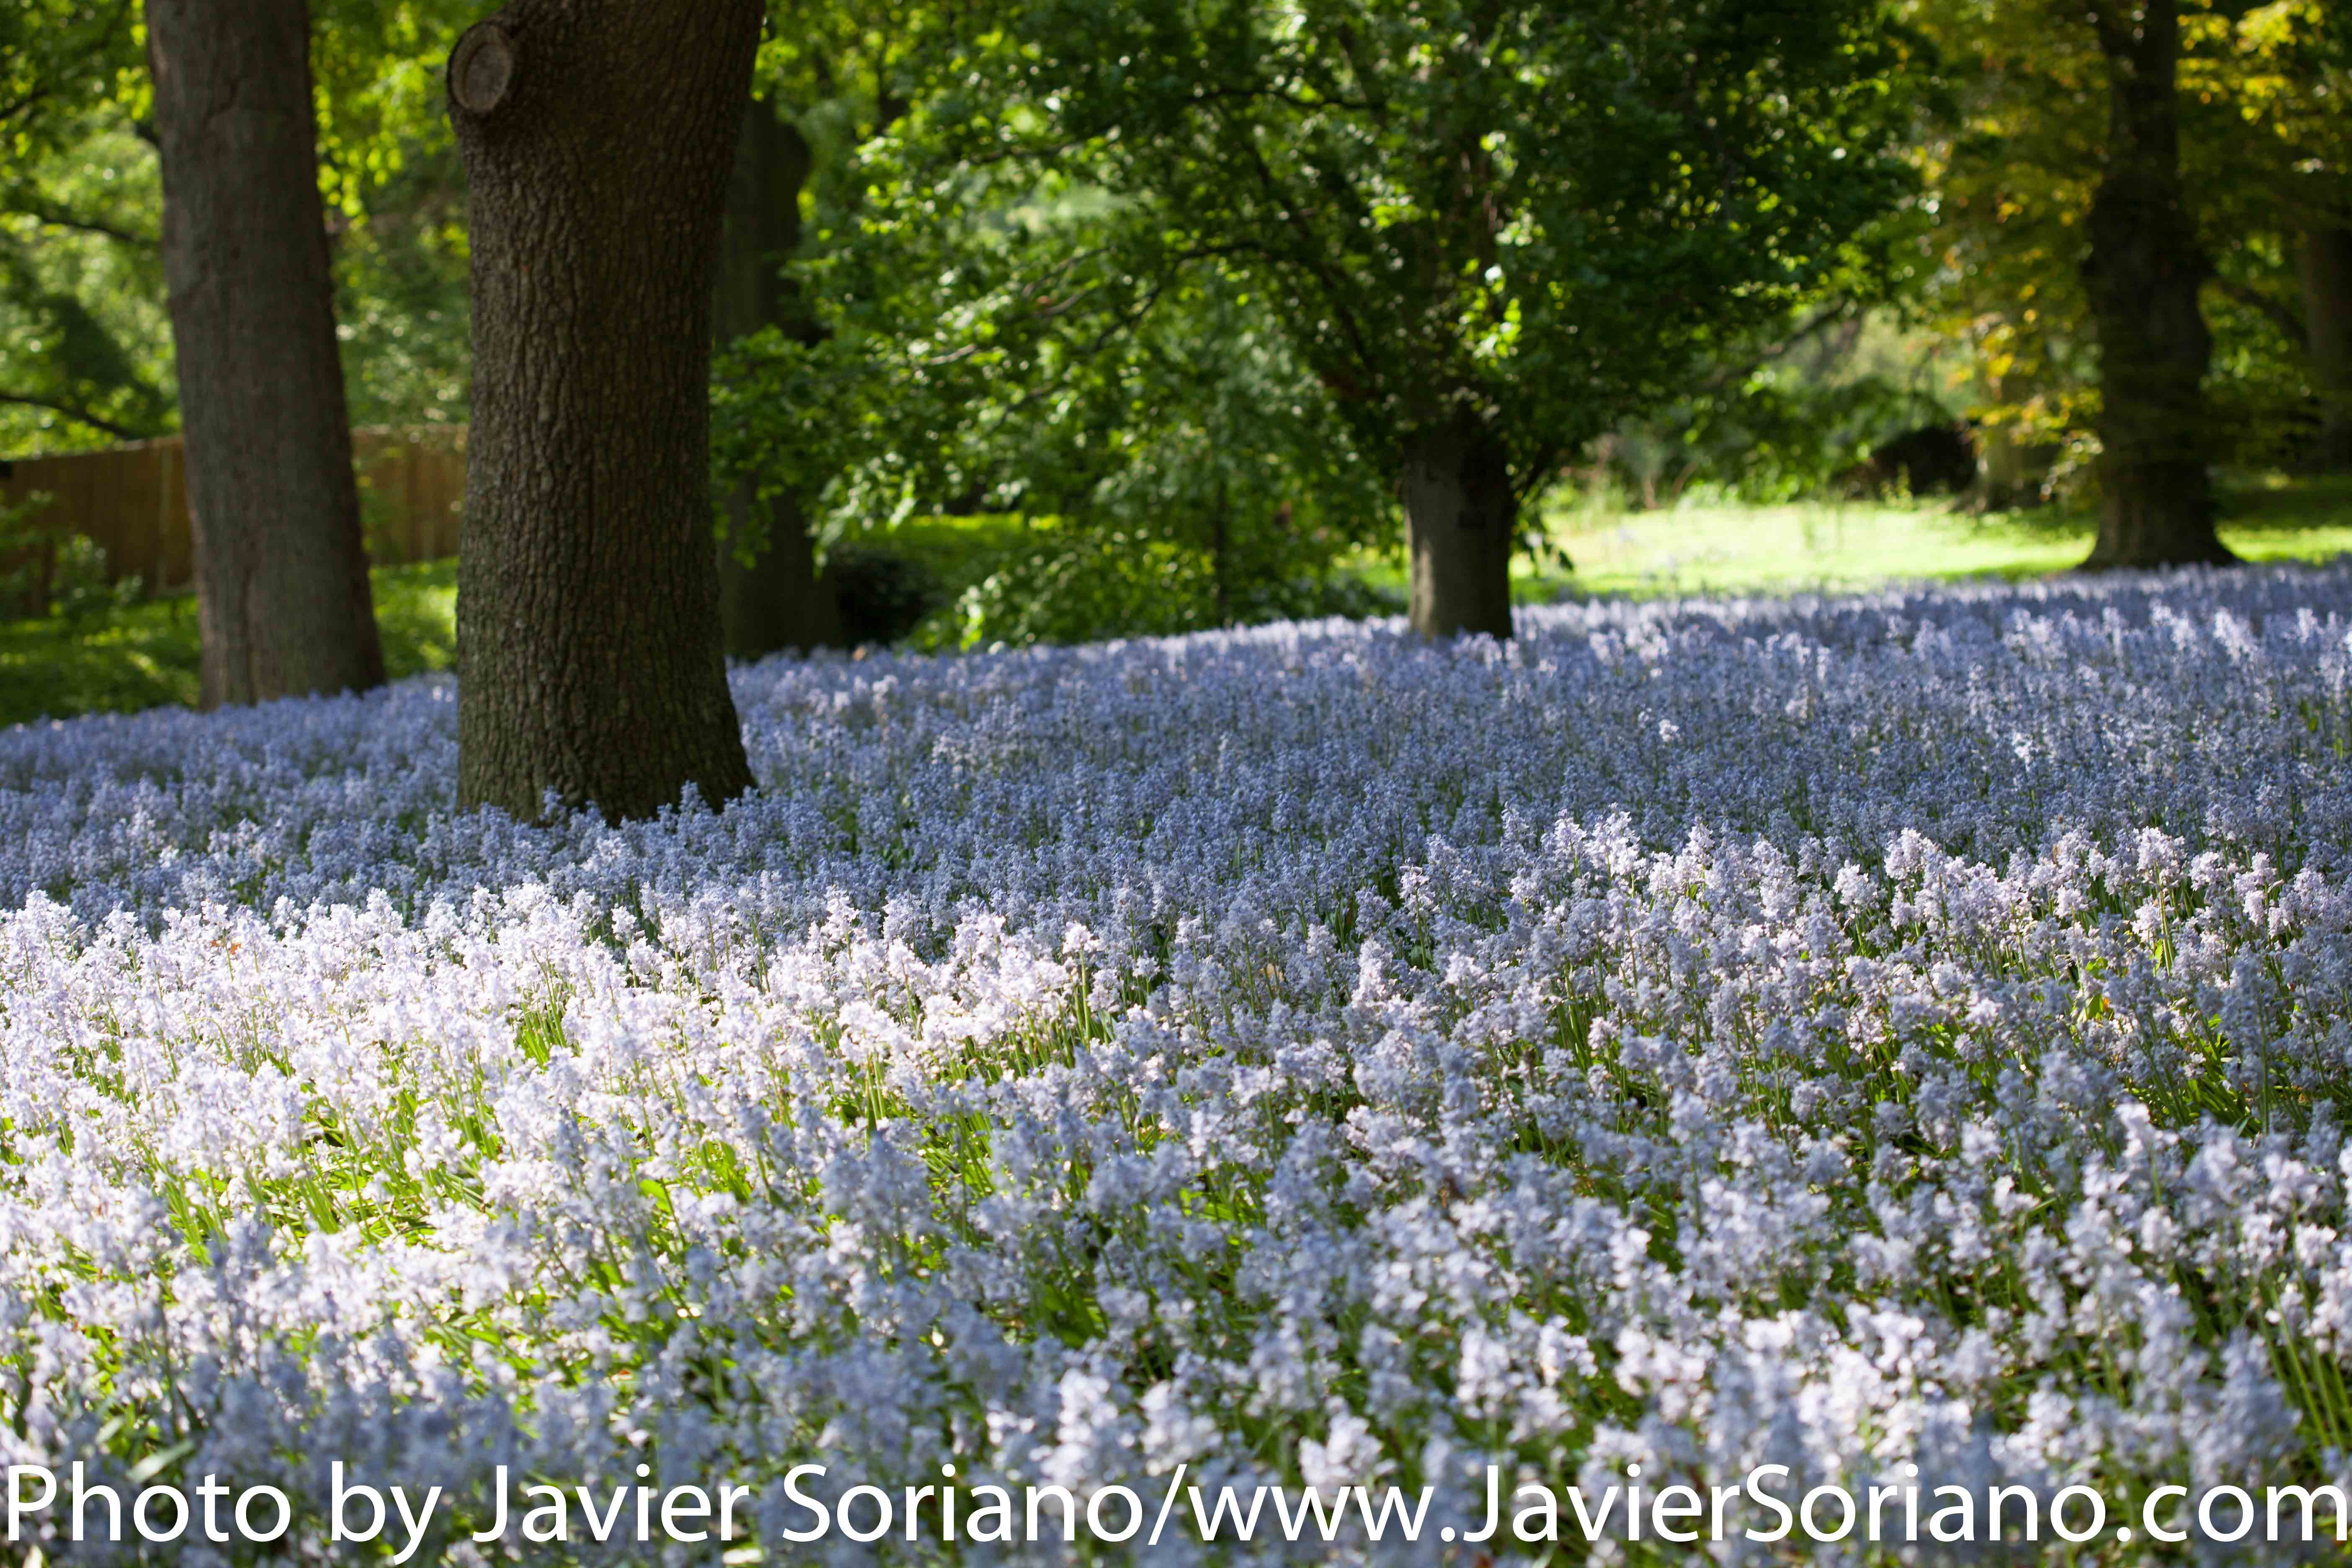 May 19, 2015. New York City – It is Spring in NYC and there are many flowers at the Brooklyn Botanic Garden. It is beautiful! Photo by Javier Soriano/http://www.JavierSoriano.com/